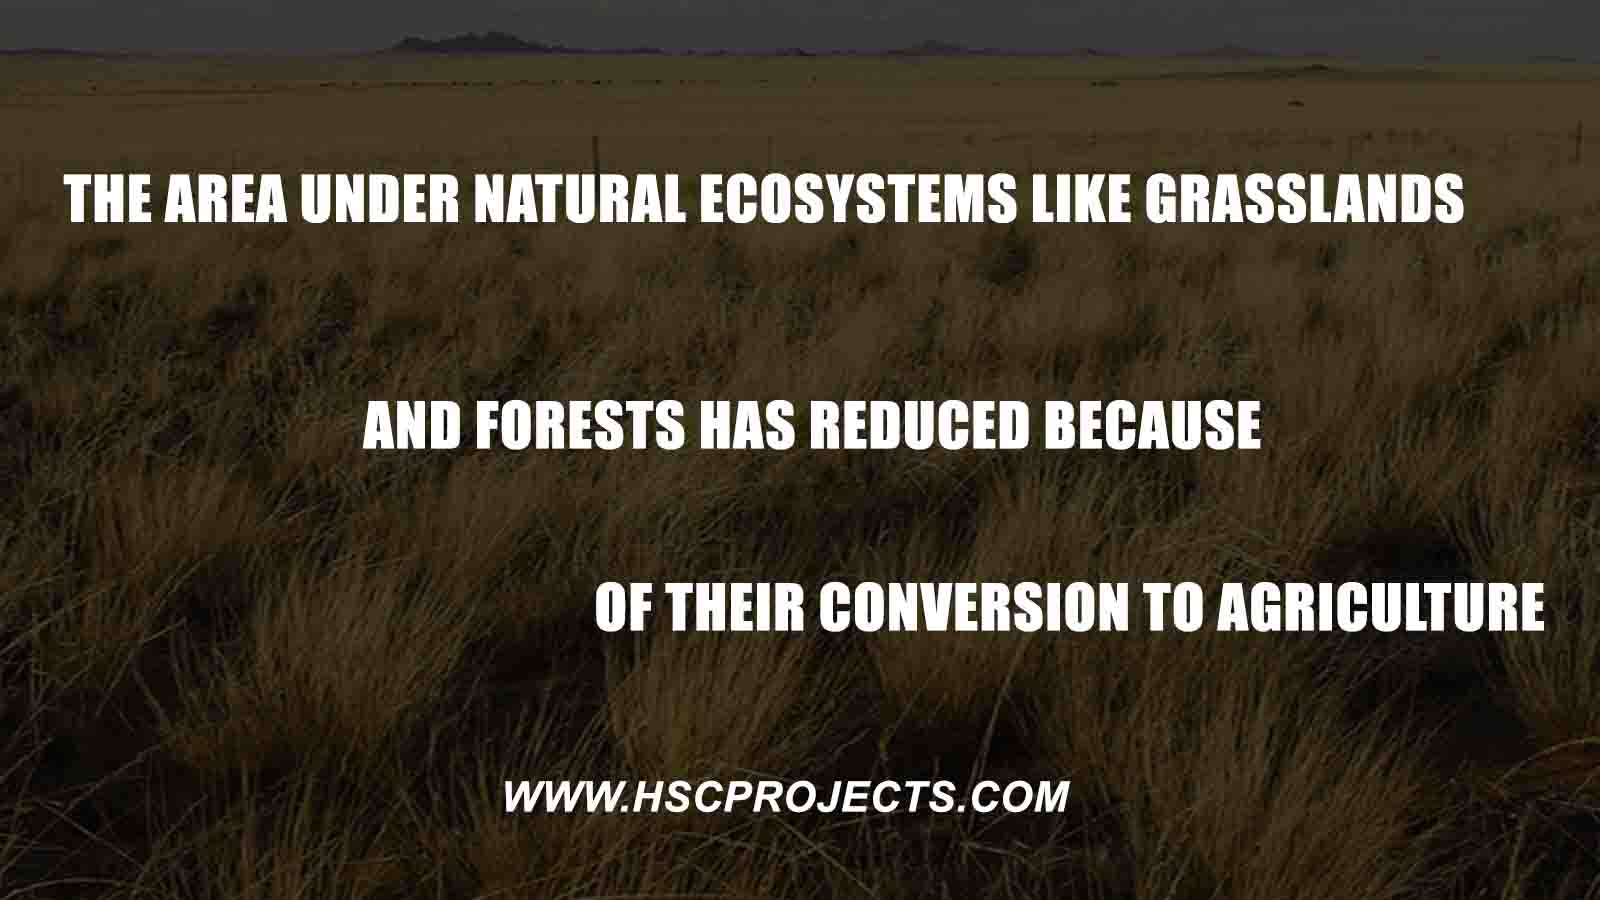 The Area Under Natural Ecosystems like Grasslands and Forests has Reduced Because of Their Conversion to Agriculture, HSC Projects